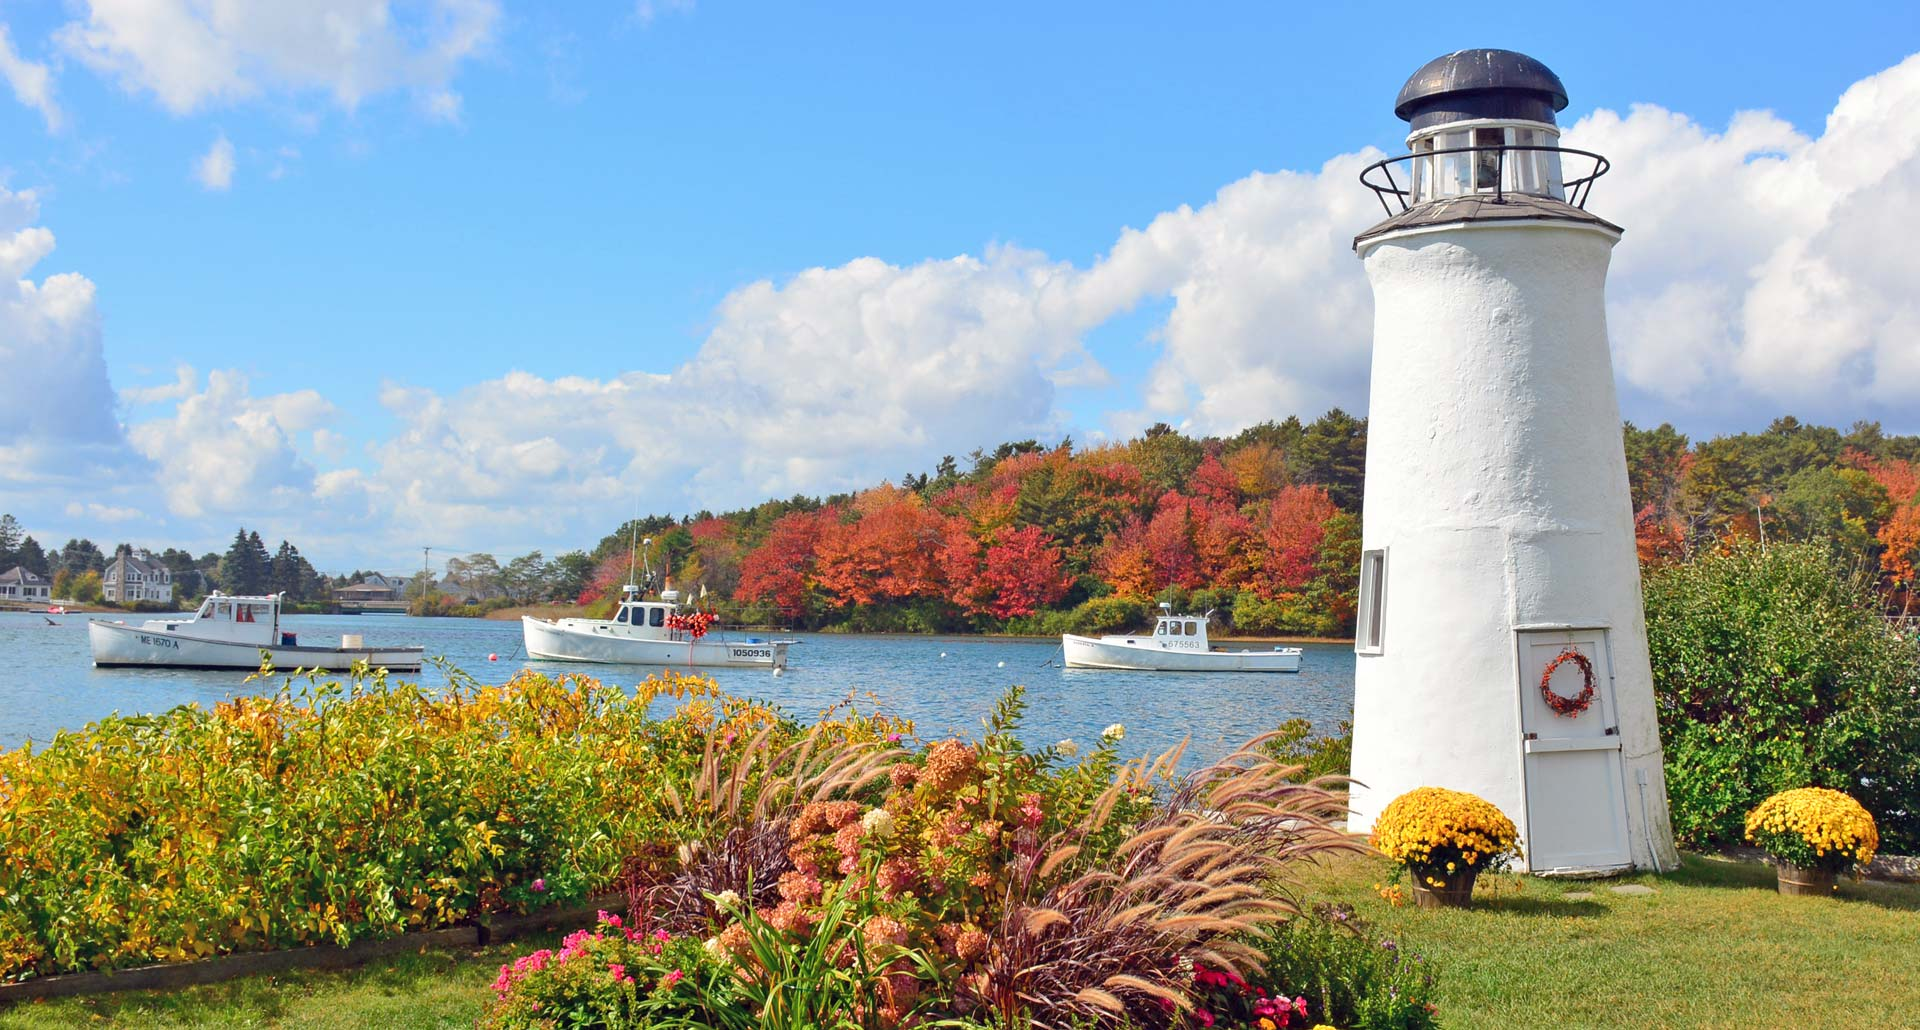 Kennebunkport, Maine - The Place to be all Year ™ - Kennebunkport ...